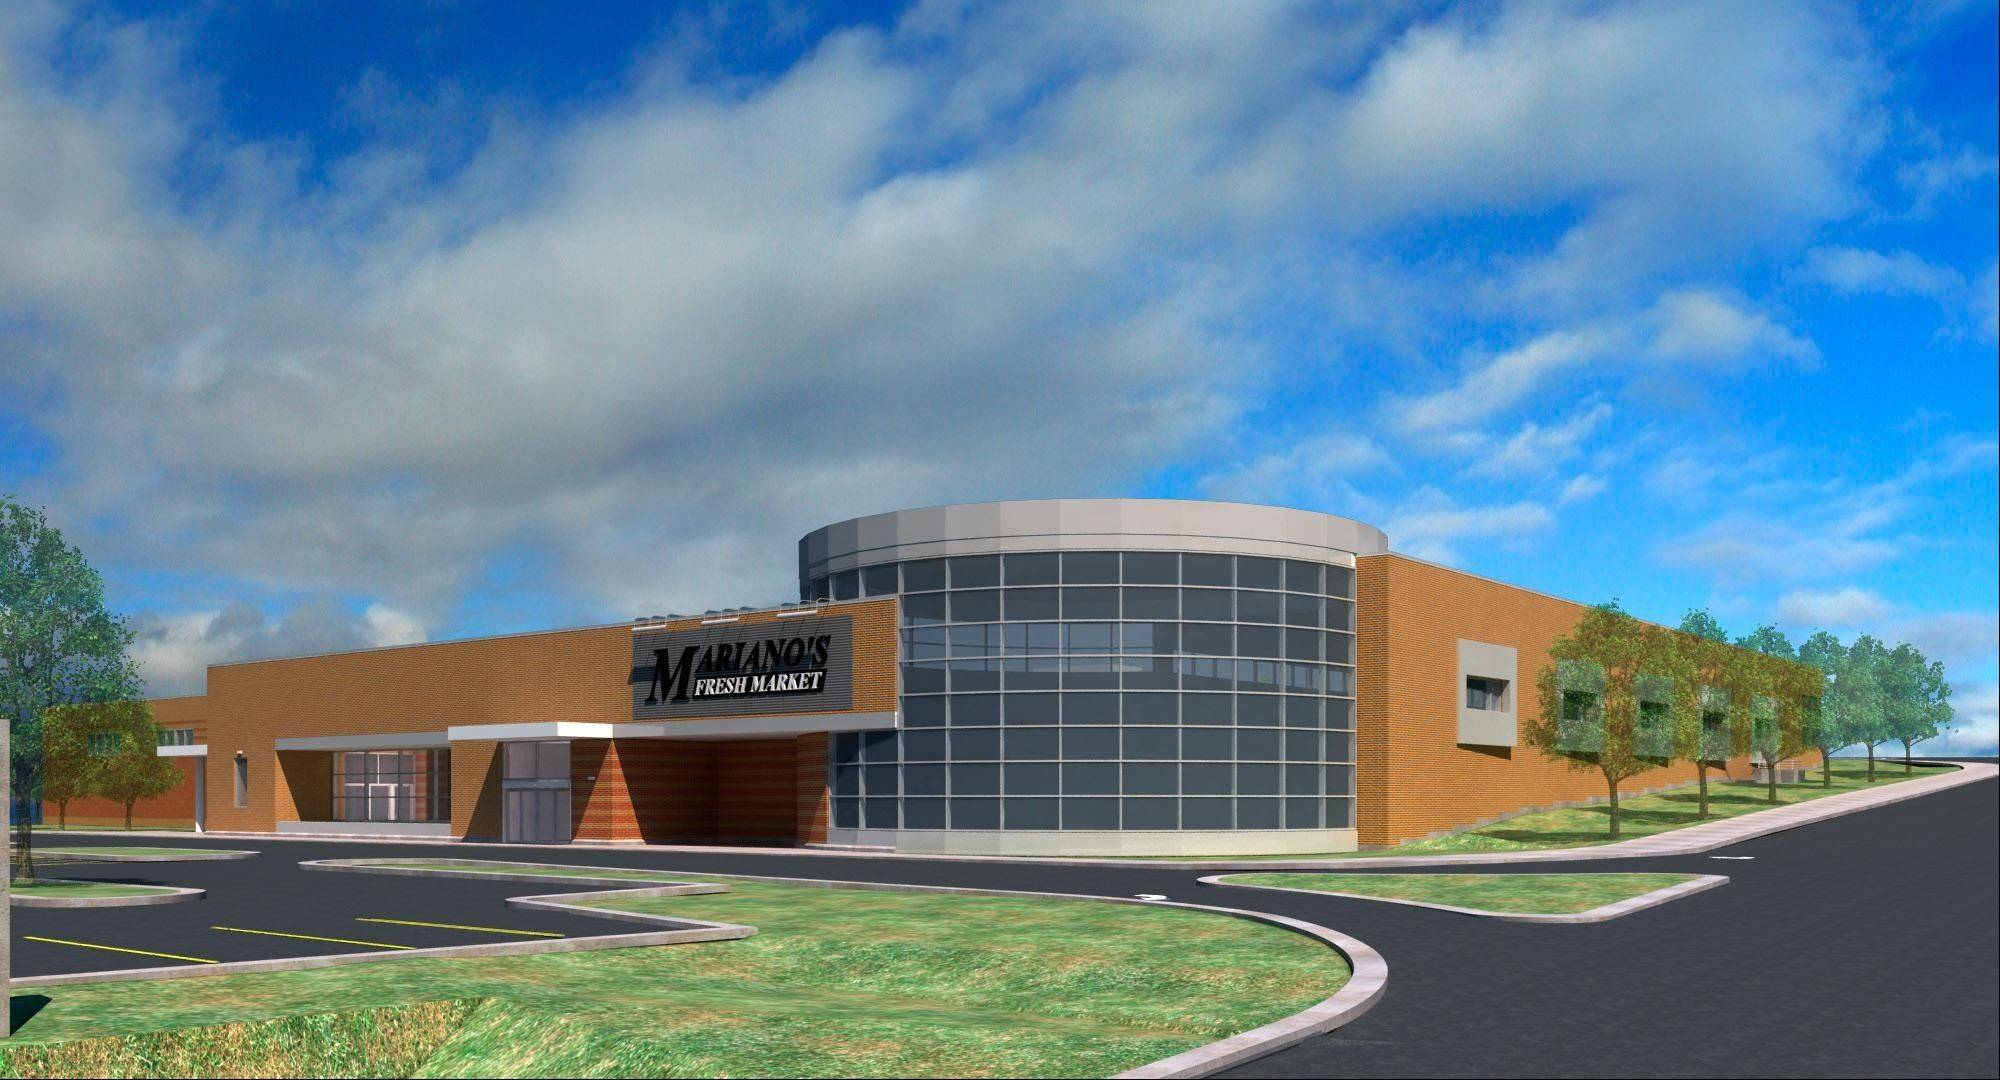 Mariano's Fresh Market is expected to open its newest location in late October at the intersection of Naperville and Roosevelt roads in Wheaton.